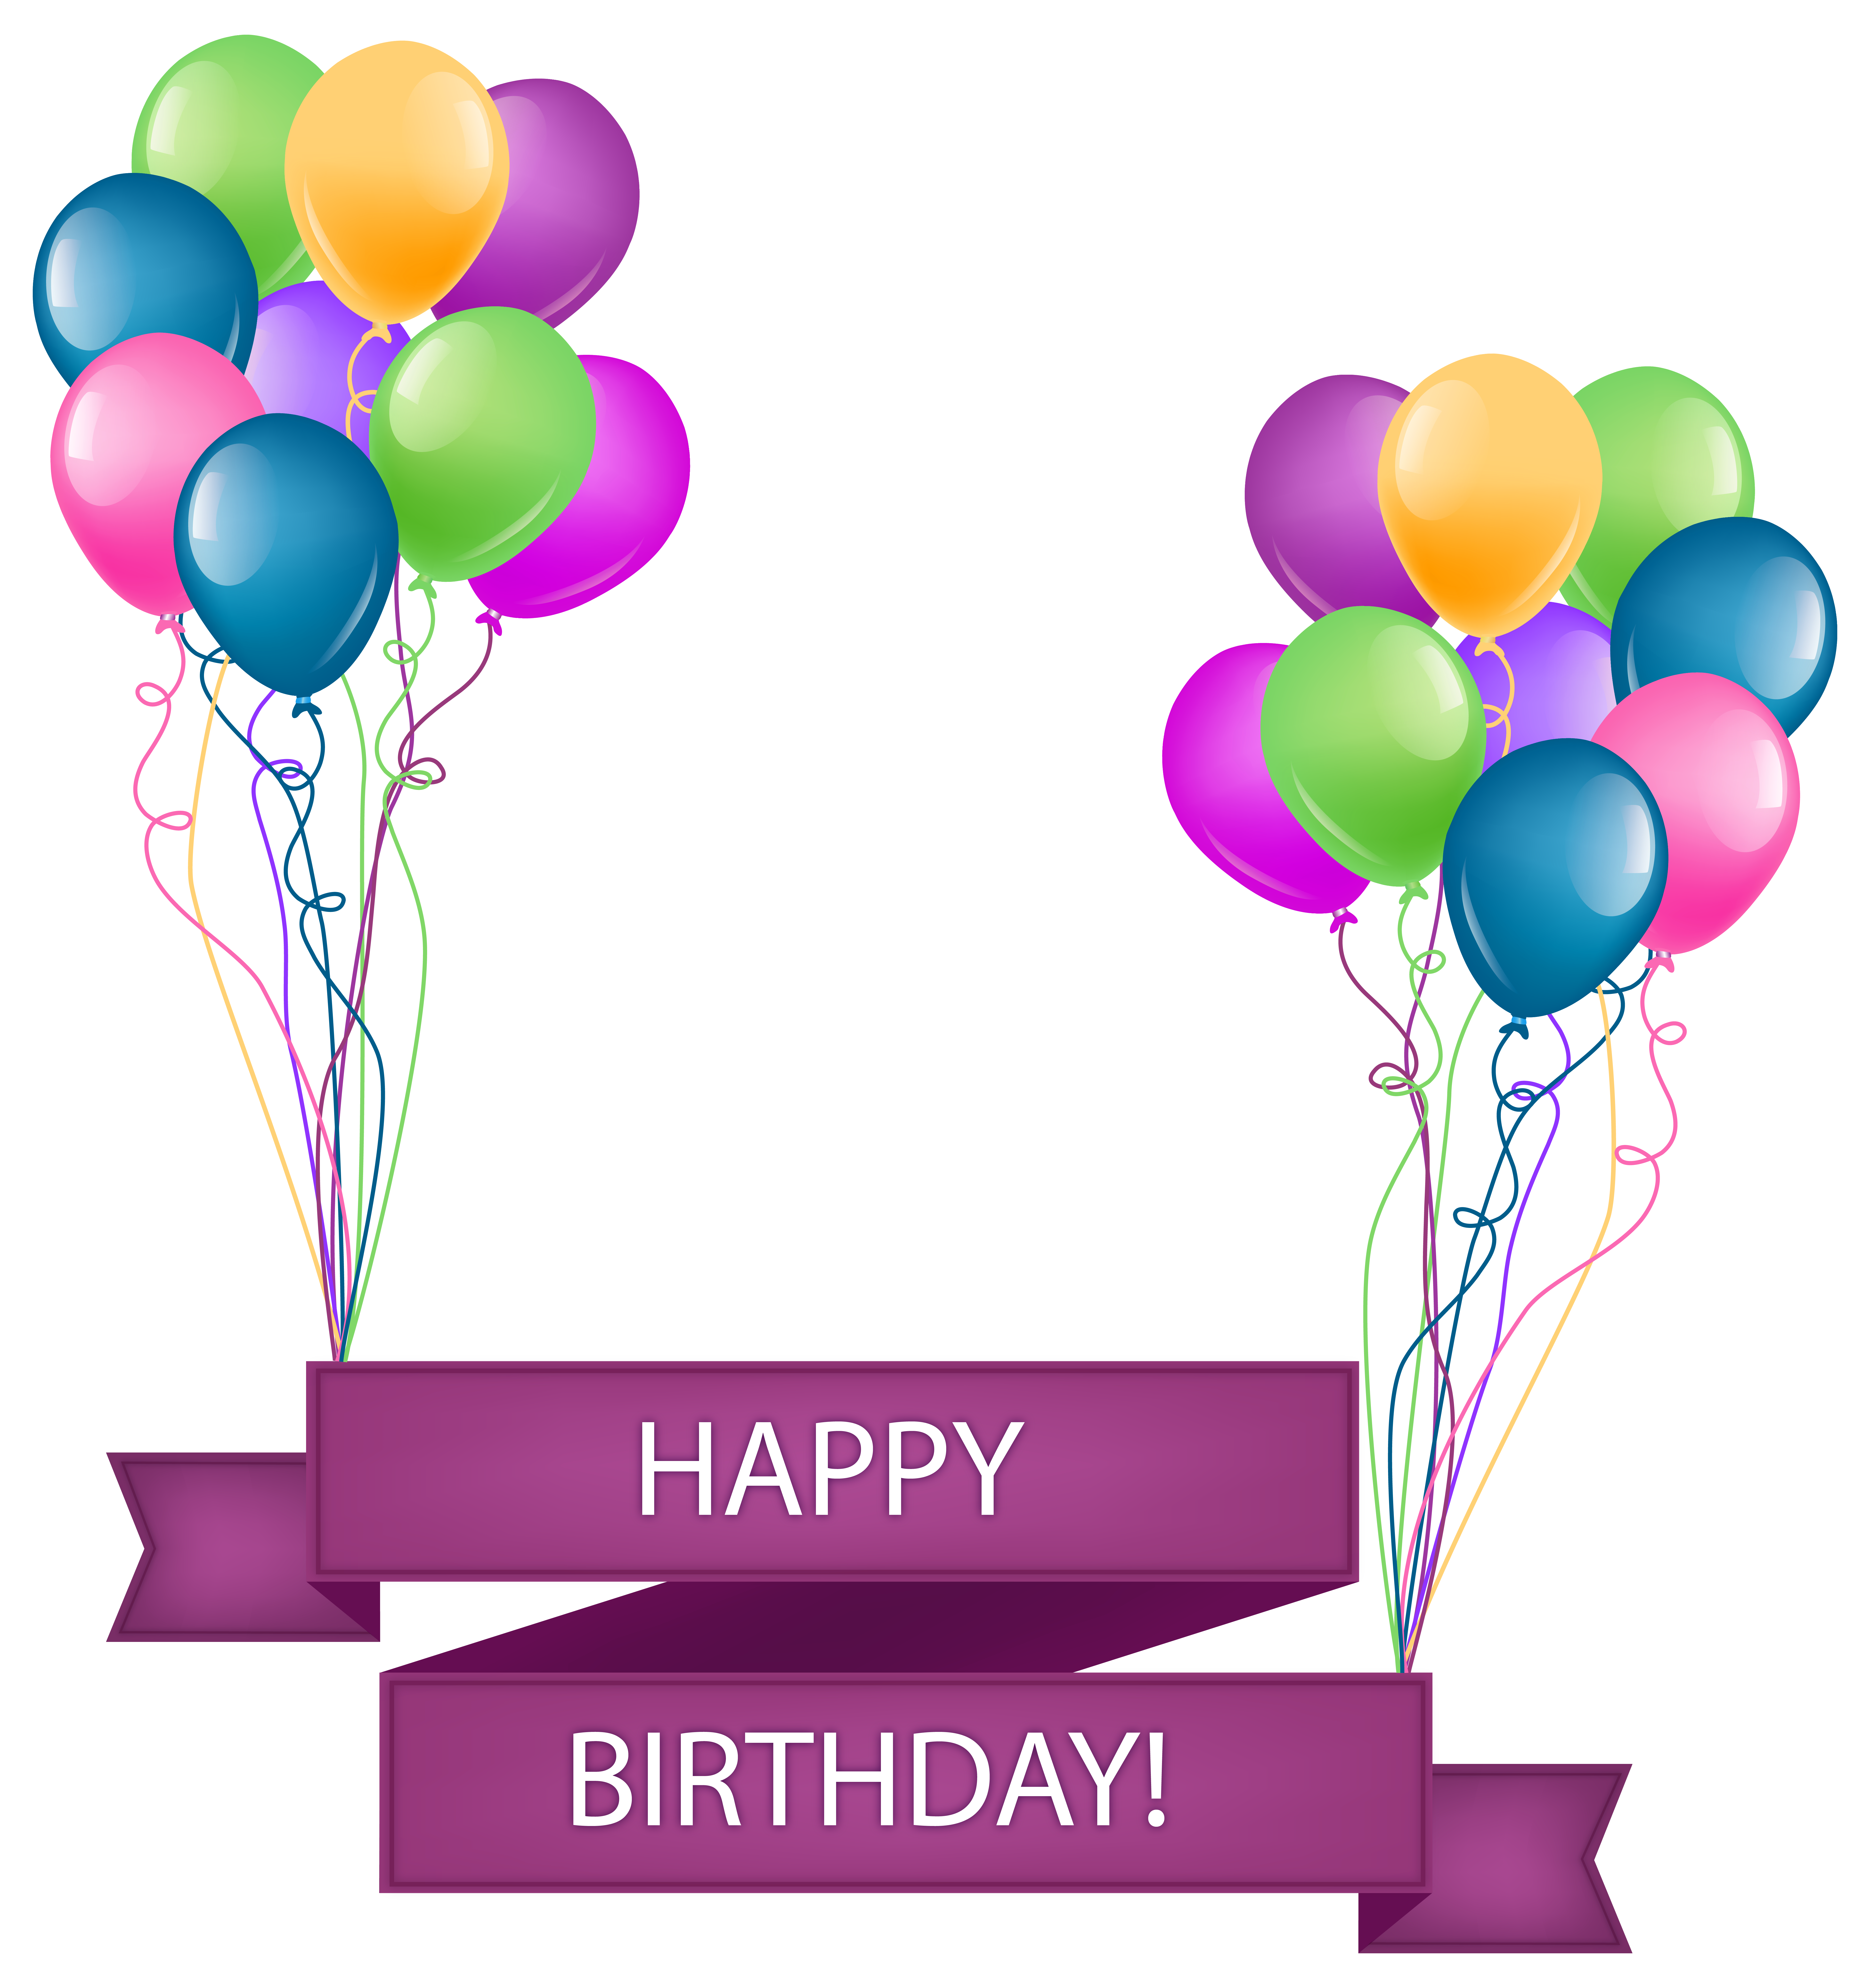 svg free download Happy birthday banner clipart. With balloons transparent png